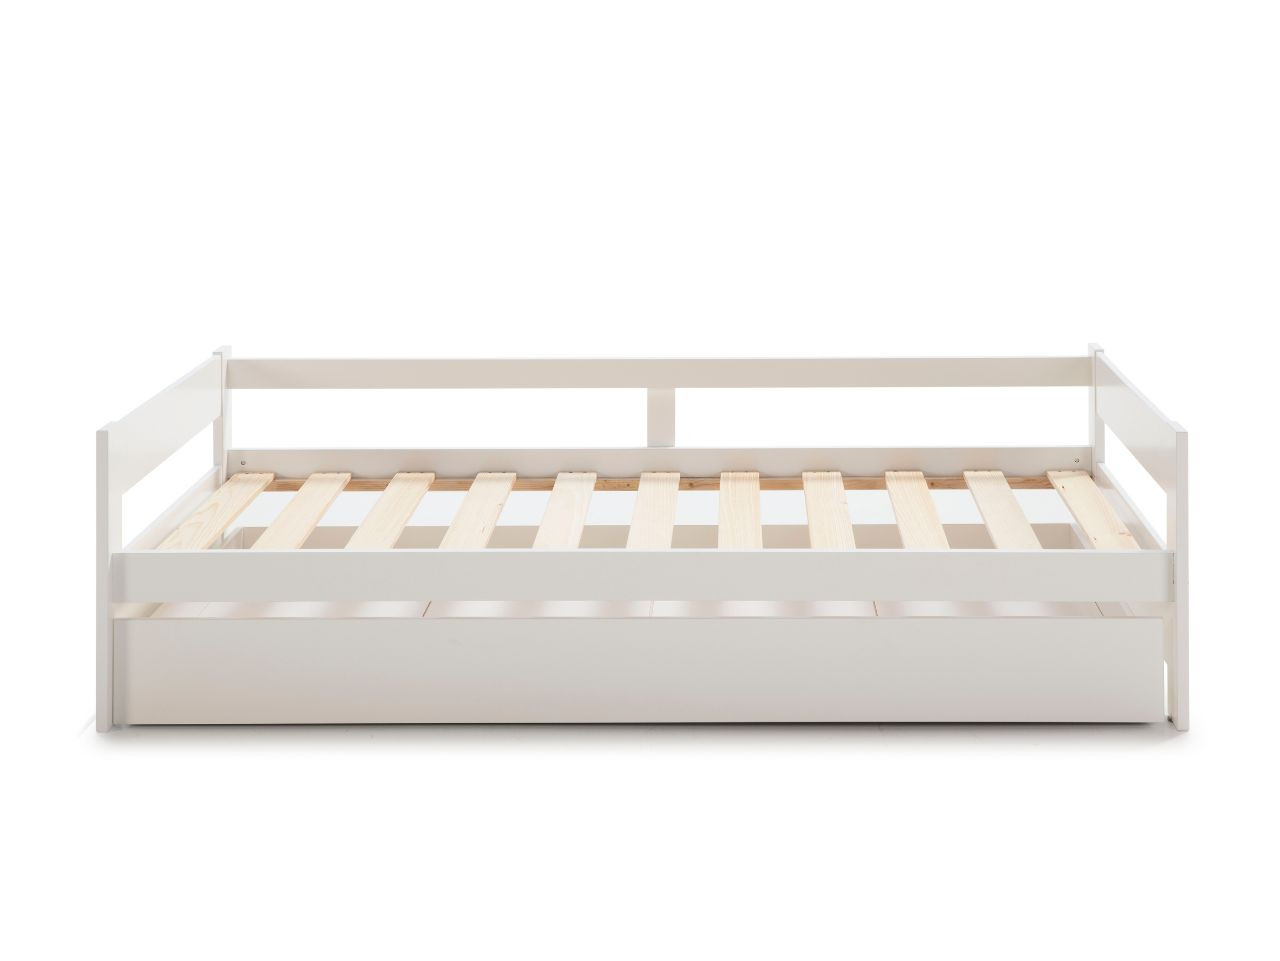 Sofa cama barato madrid